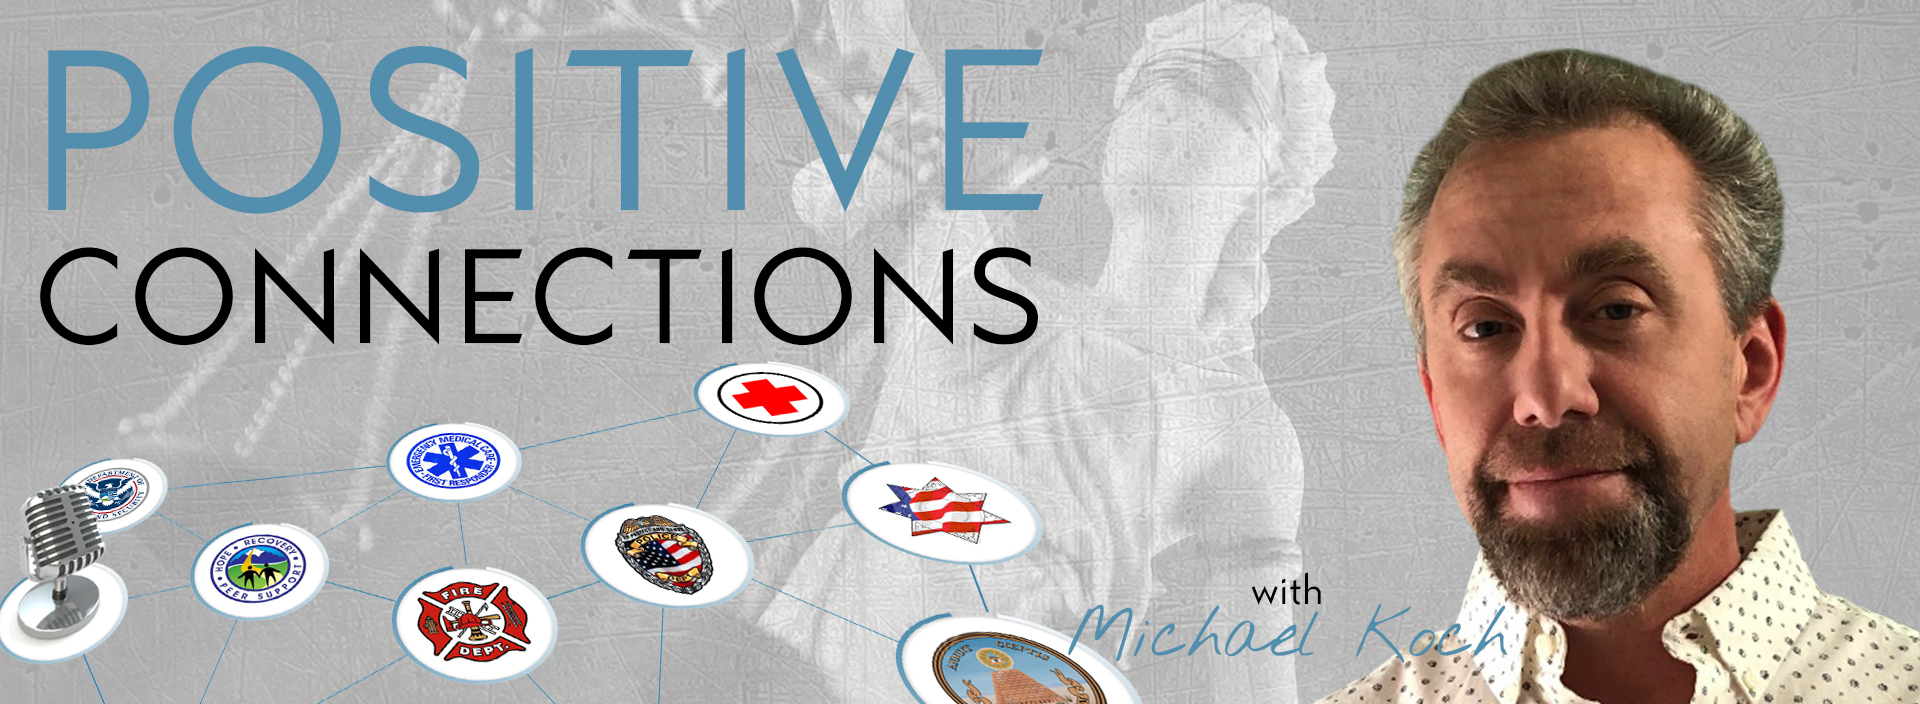 Positive Connections Podcast with Michael Koch